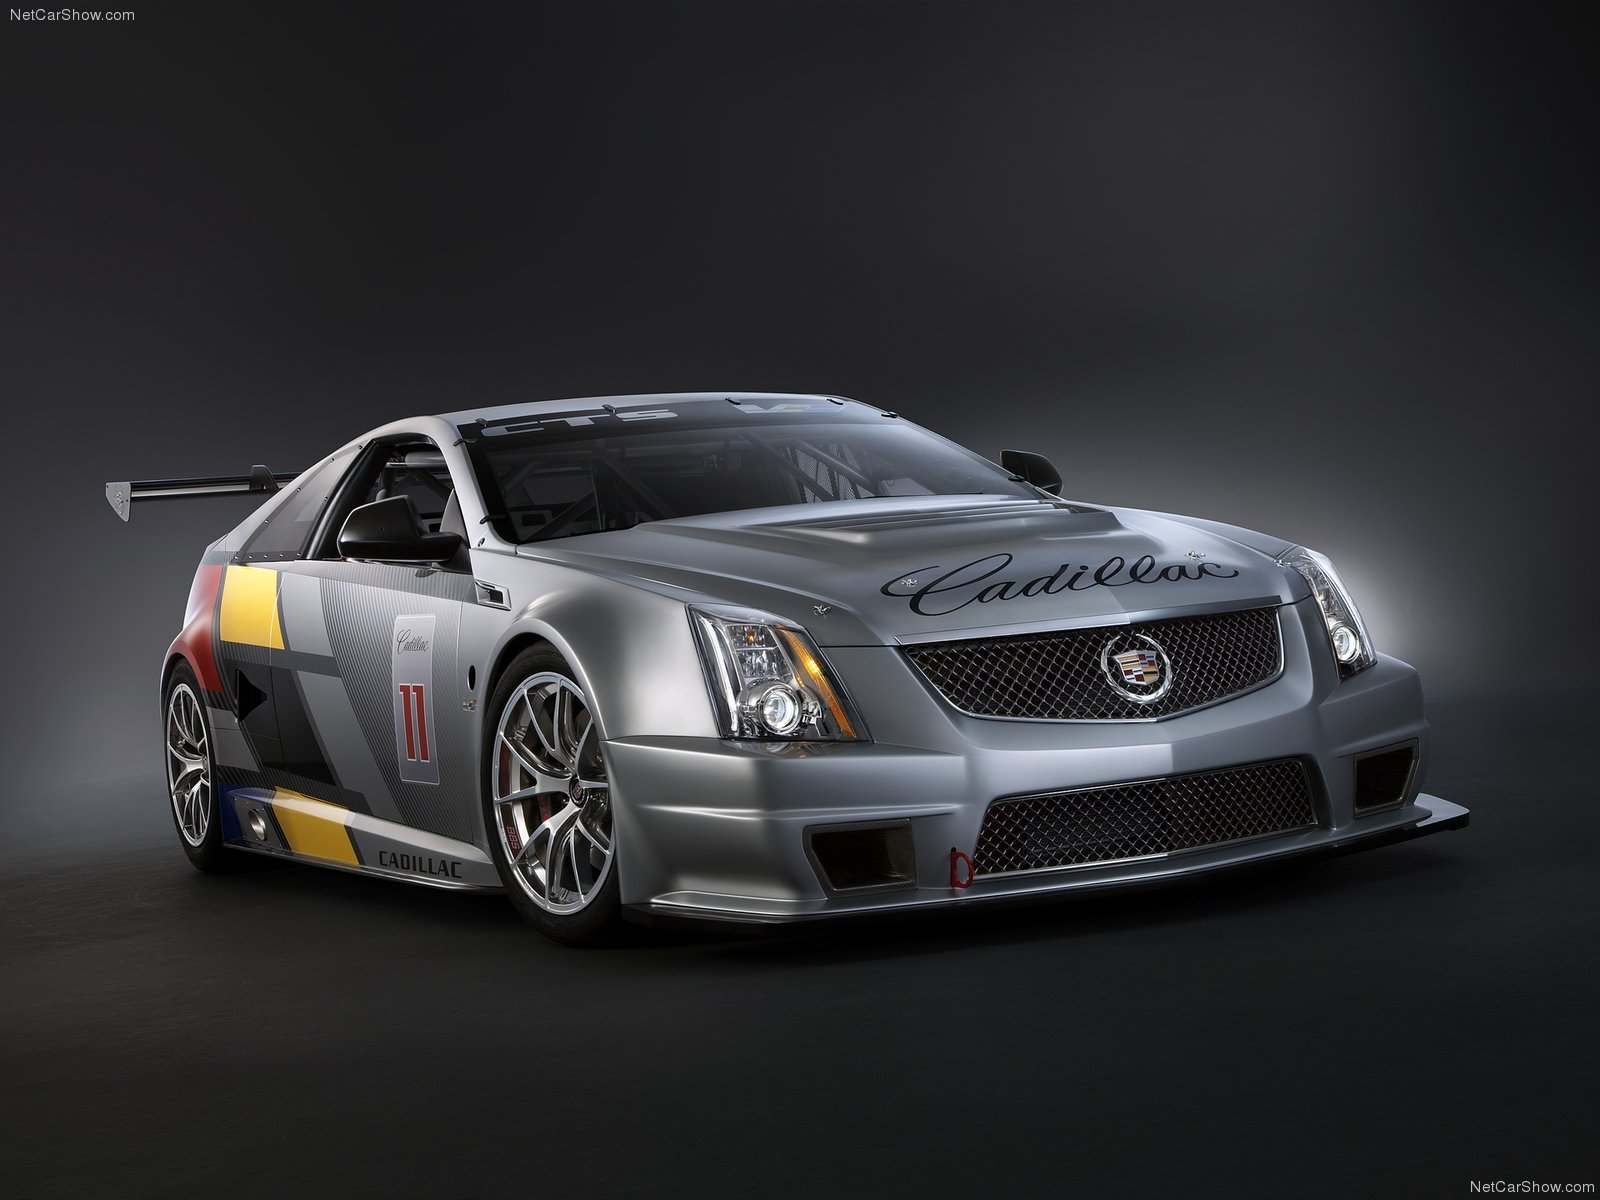 Cadillac Cts V Coupe Race Car Photo 77651